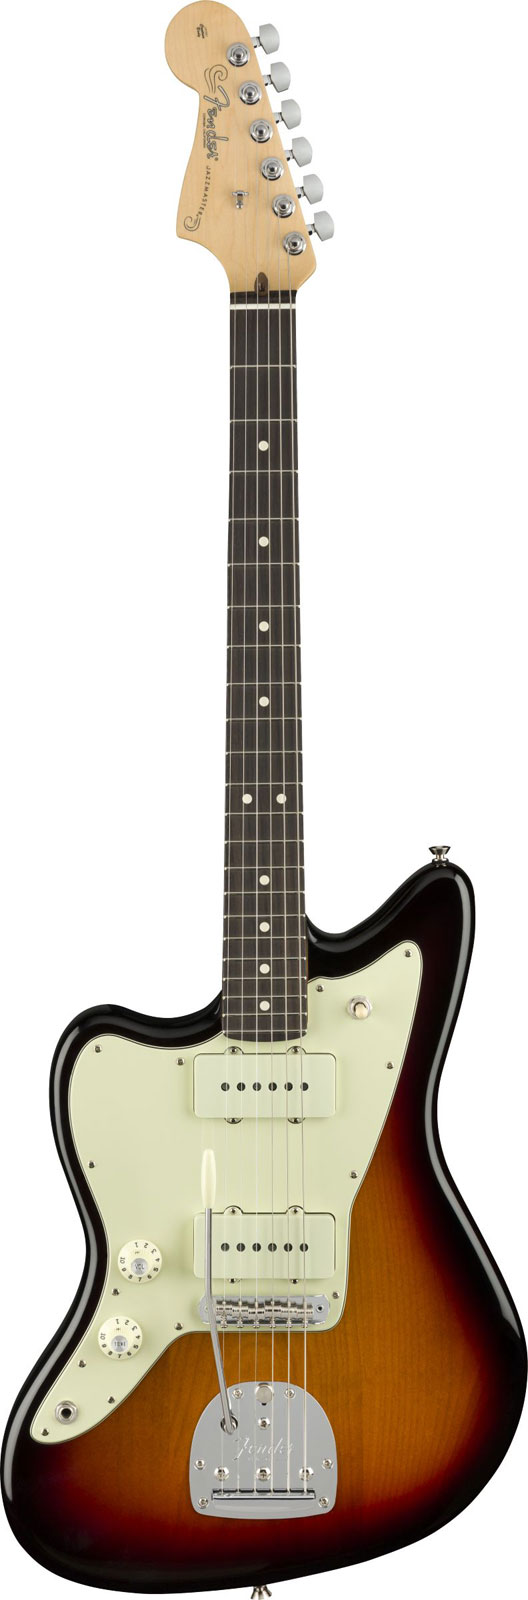 Fender American Professional Left-handed Jazzmaster Rw 3-color Sunburst